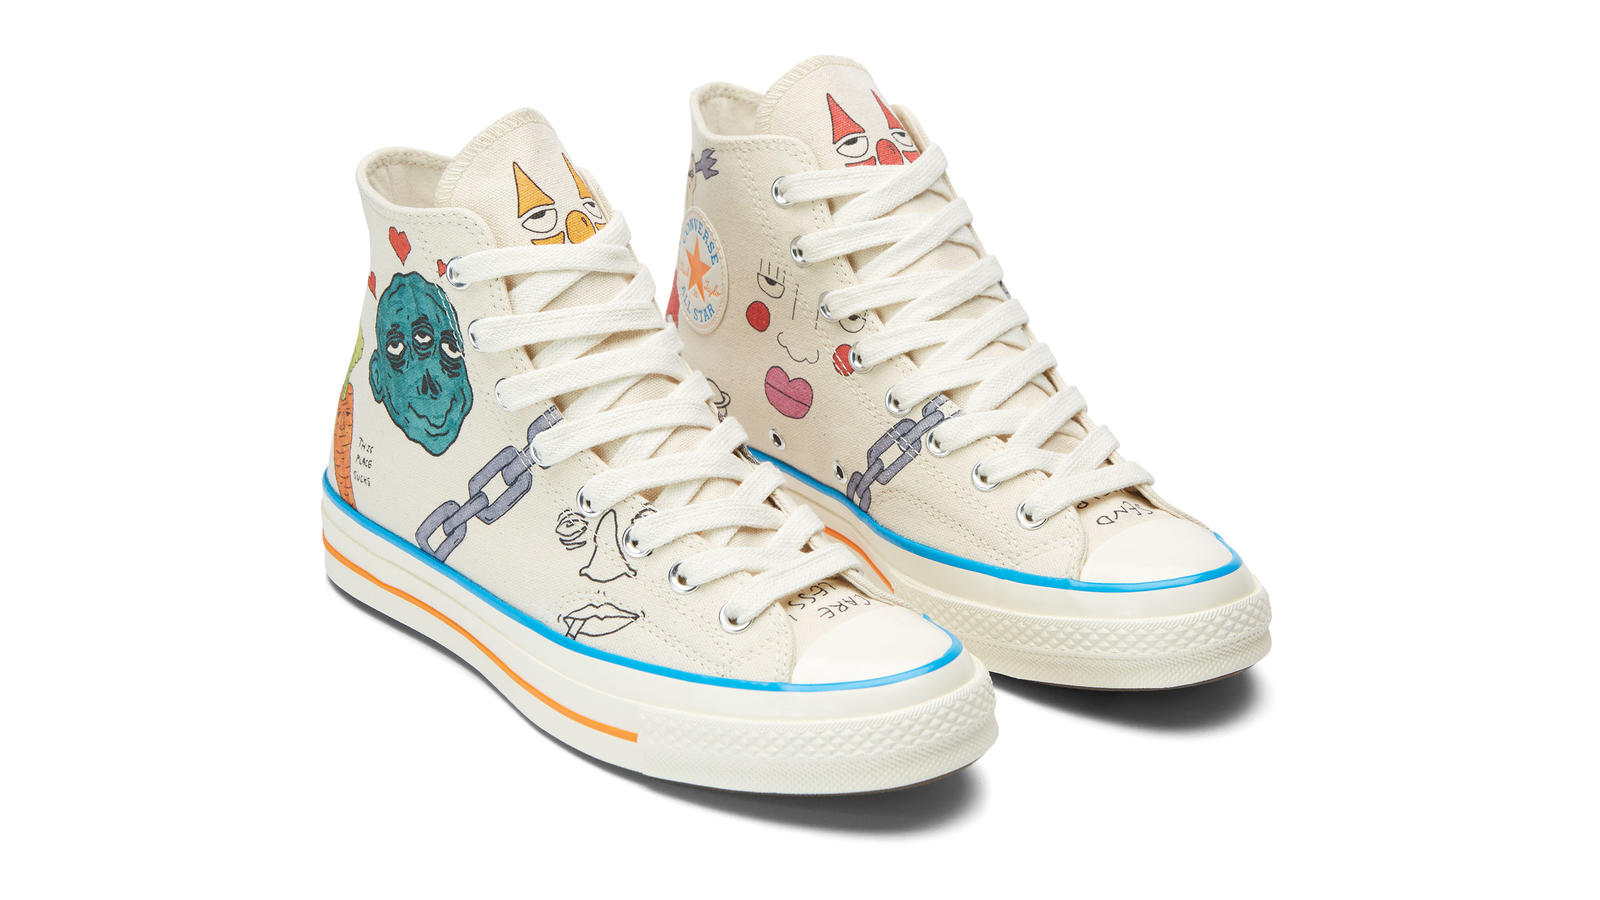 Converse 2383 Fl Artist Series Pdp Images 018